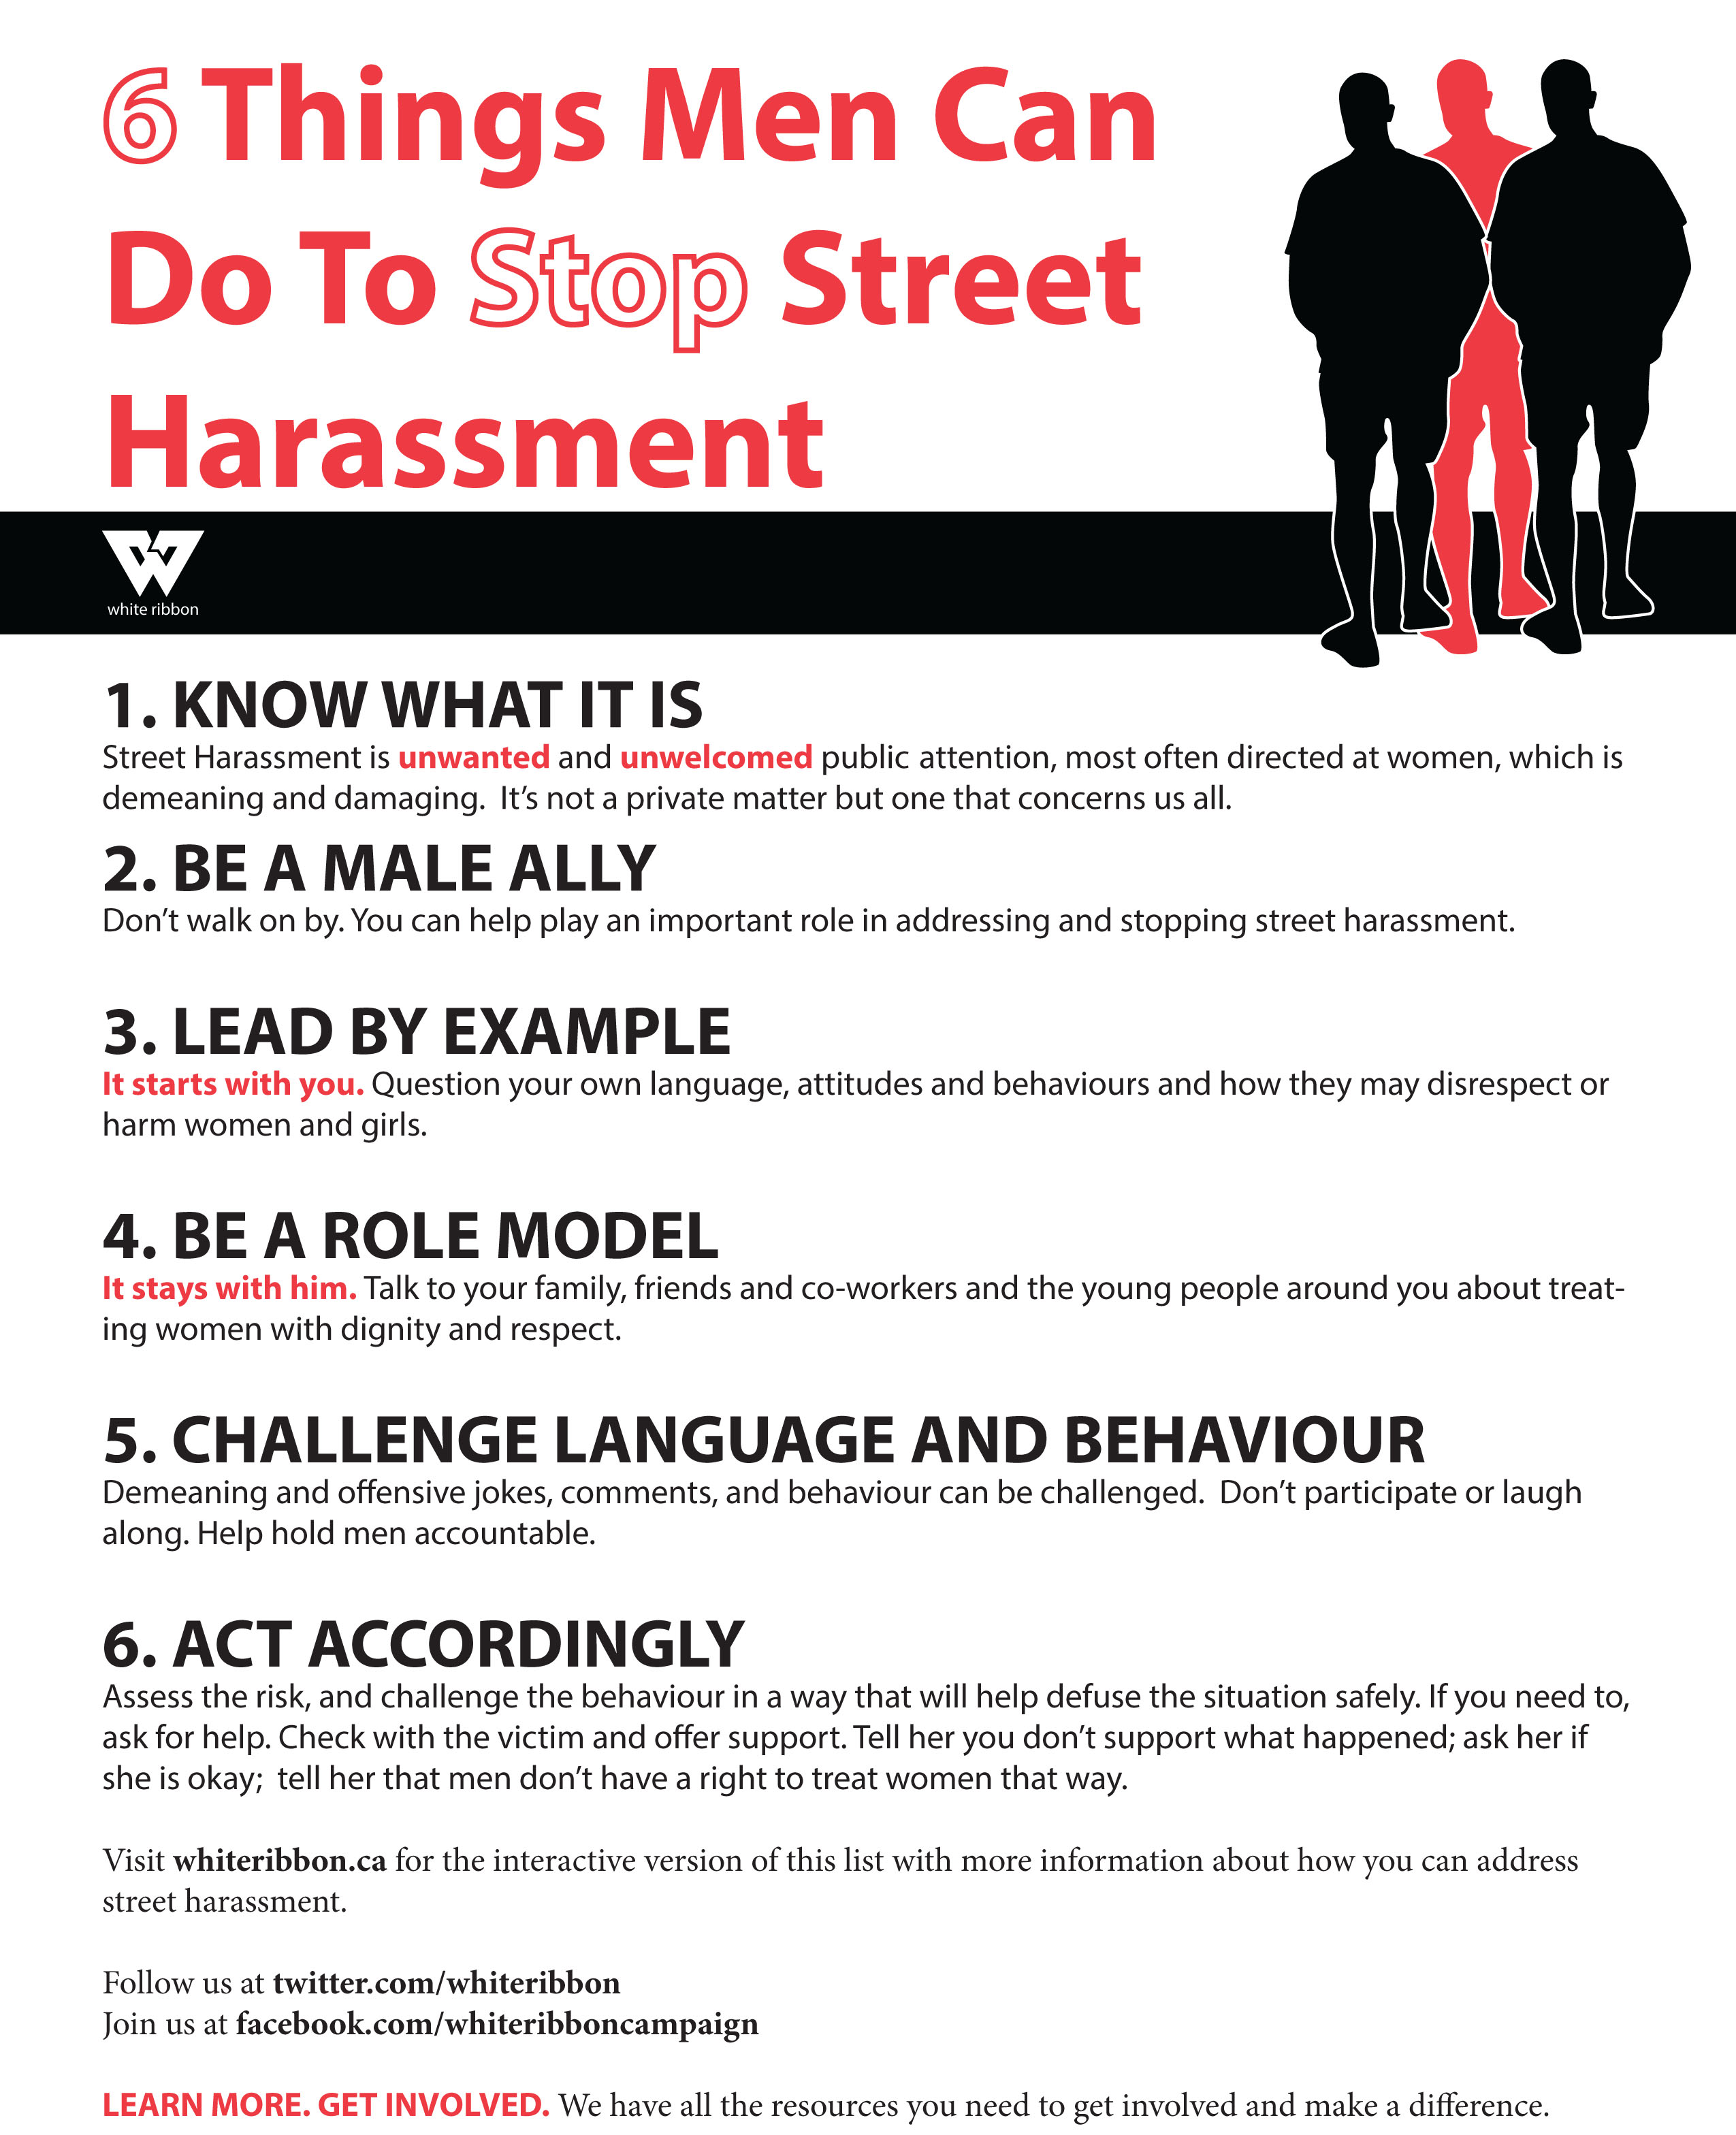 harassment of women The survey found that 65% of all women had experienced street harassment  among all women, 23% had been sexually touched, 20% had been followed,  and.